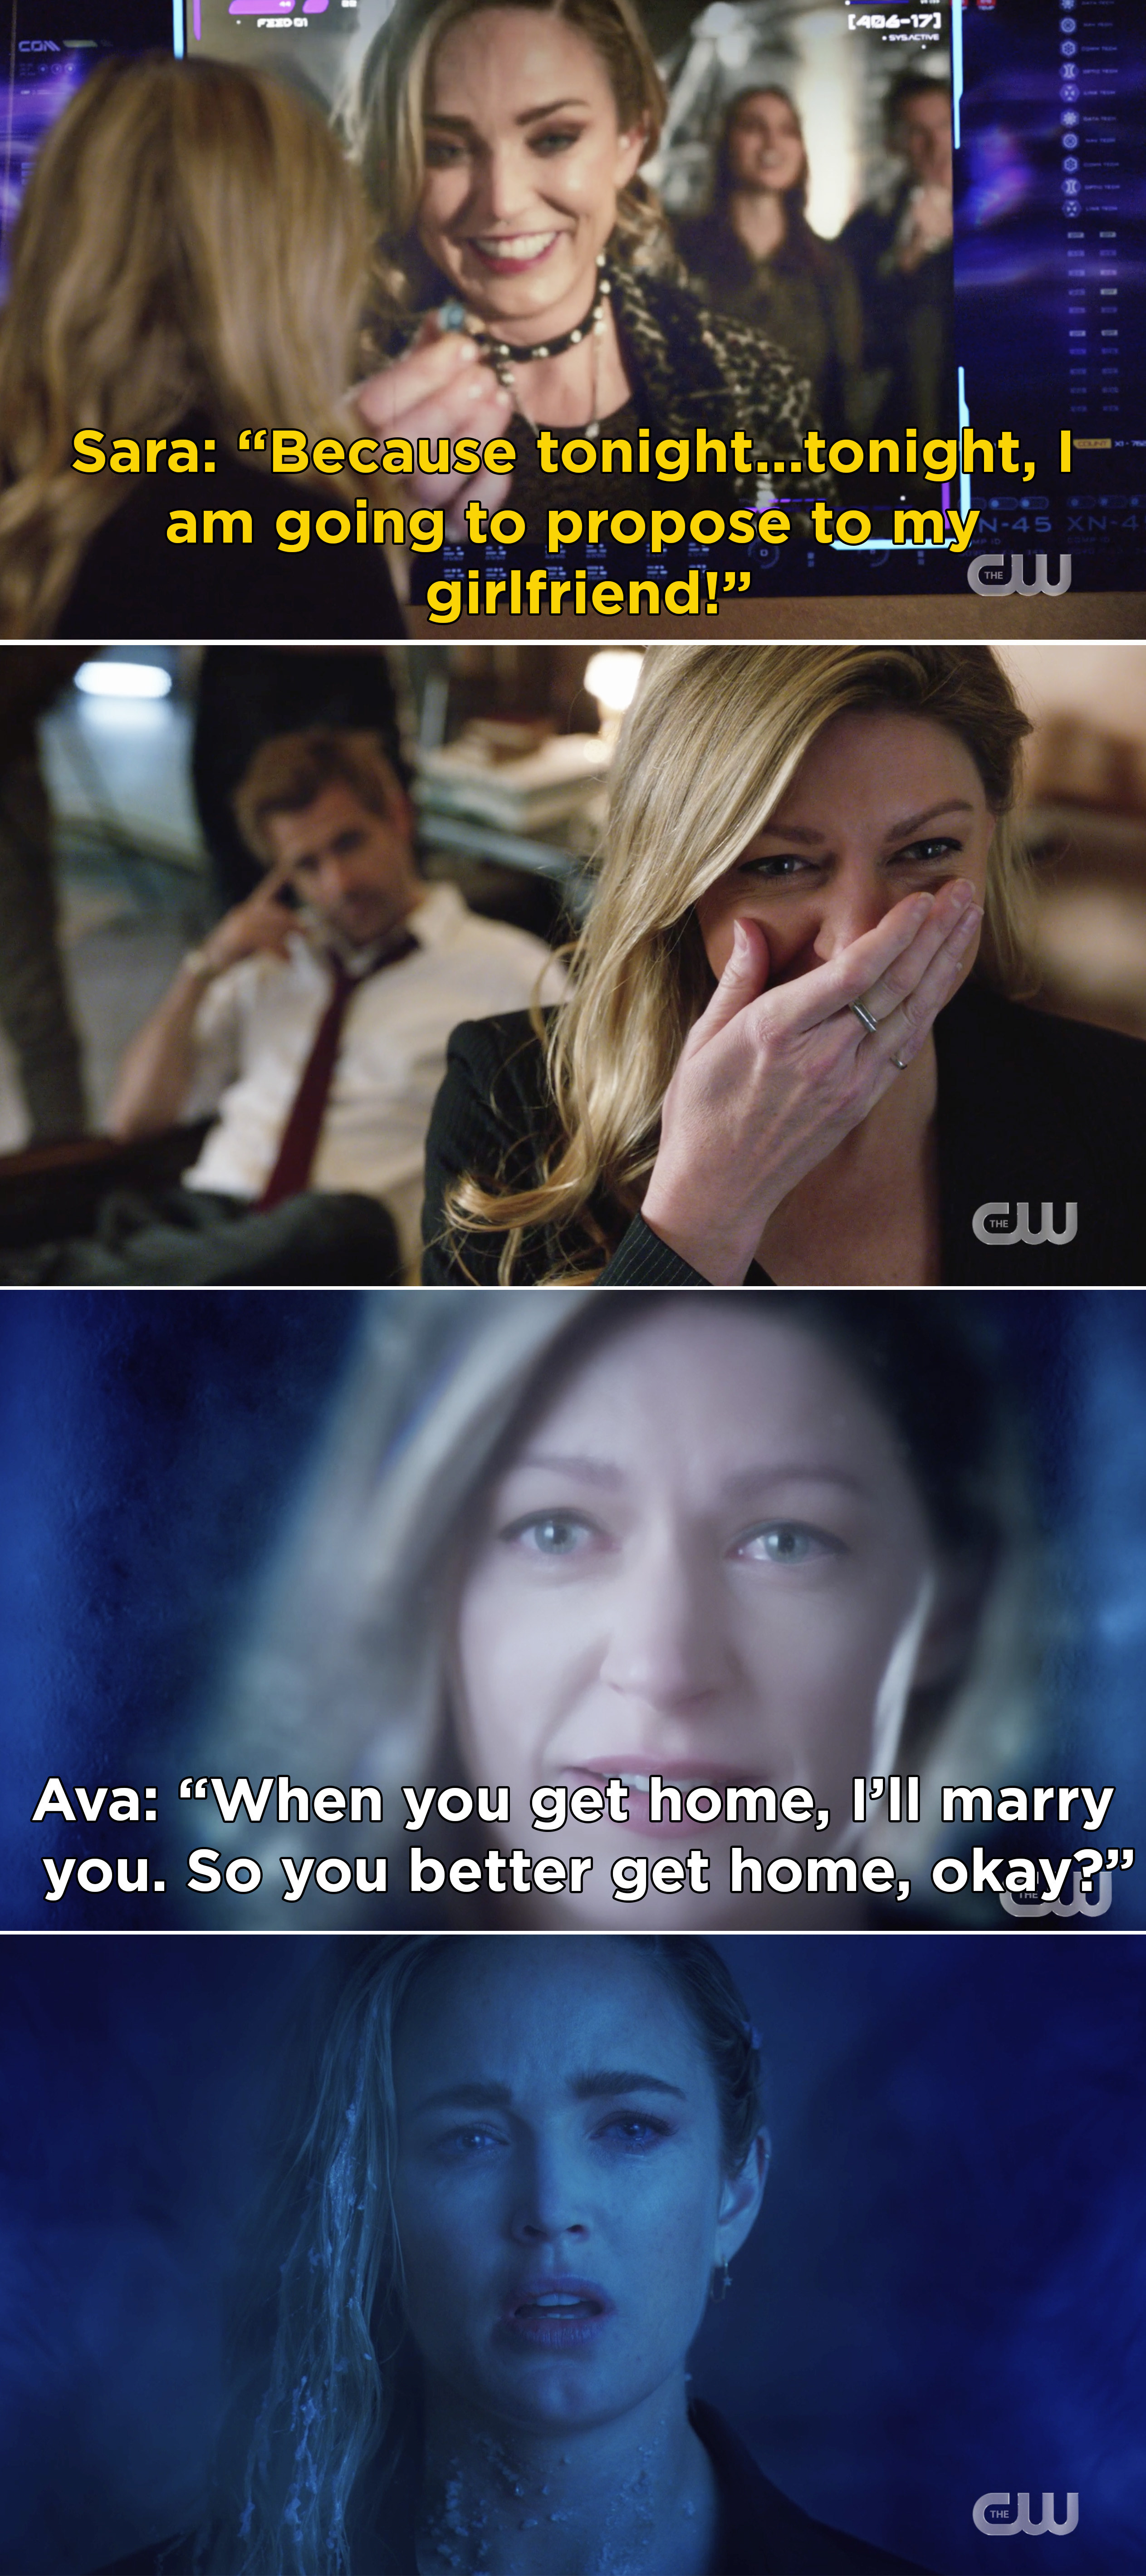 Sara saying she wants to propose to Ava in a video message, then Ava telling Sara she will marry her when she gets home